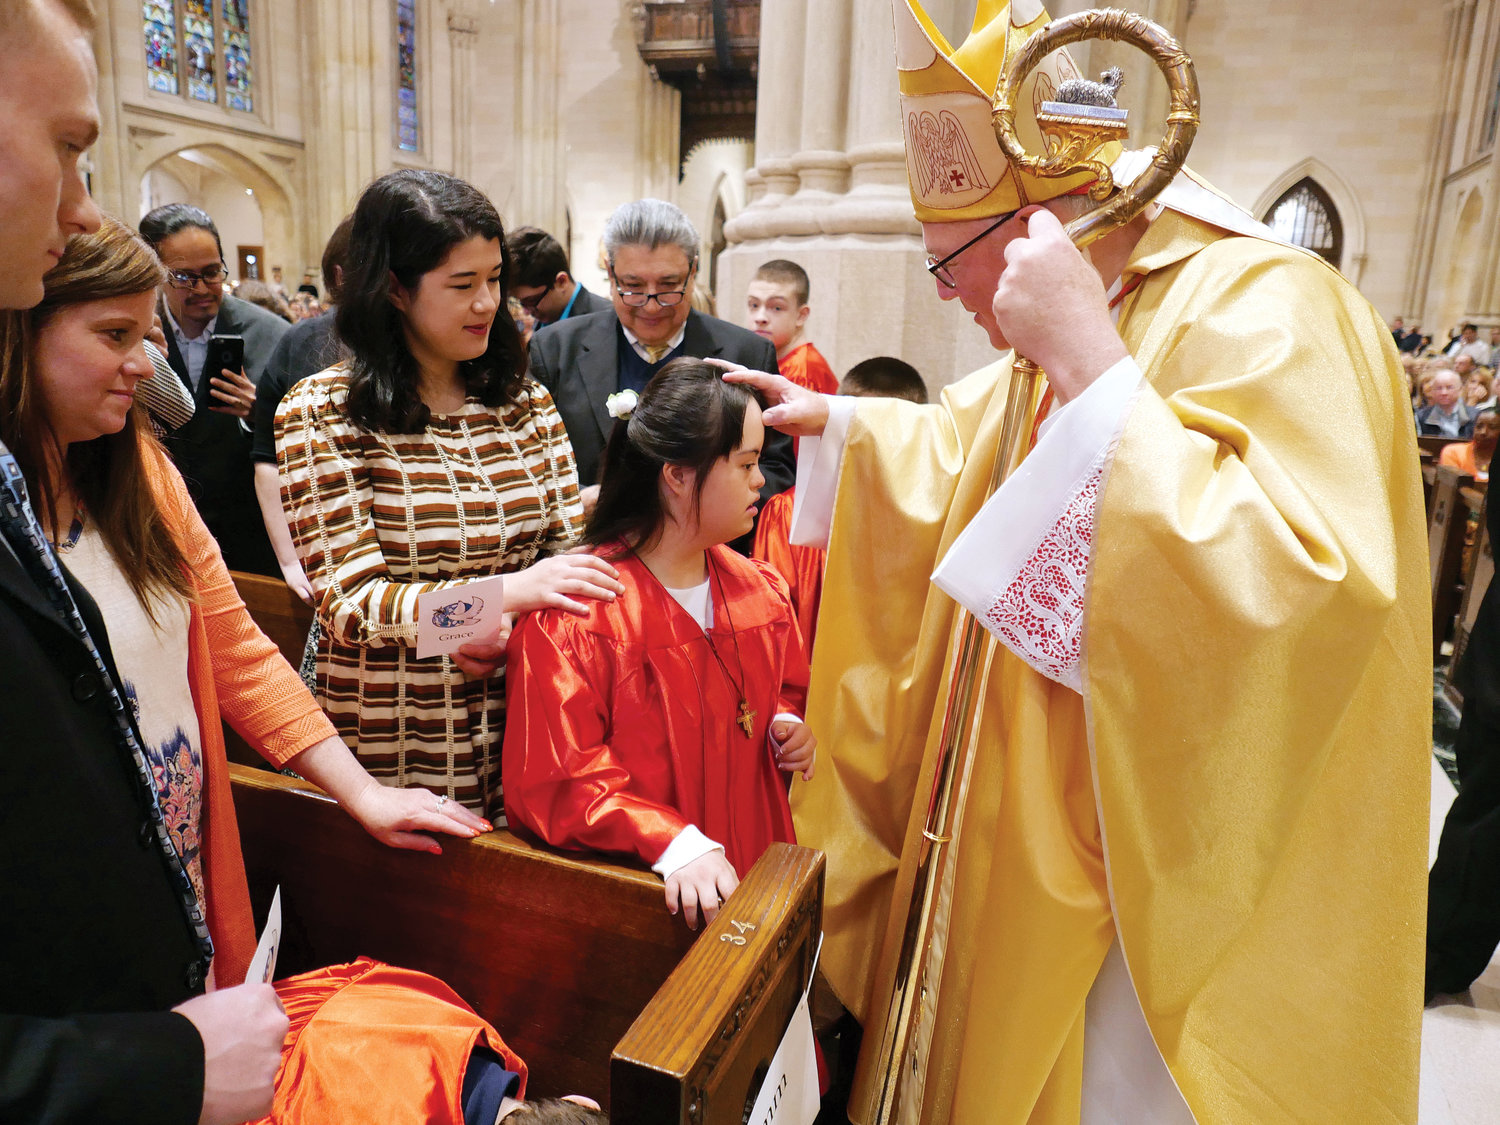 Cardinal Dolan confers the sacrament of confirmation upon Kana Welch, 17, at the Confirmation Mass for Youth with Disabilities April 28 at St. Patrick's Cathedral. Behind Kana is her sister and sponsor, Sara Welch. Kana is a member of Resurrection parish in Rye.